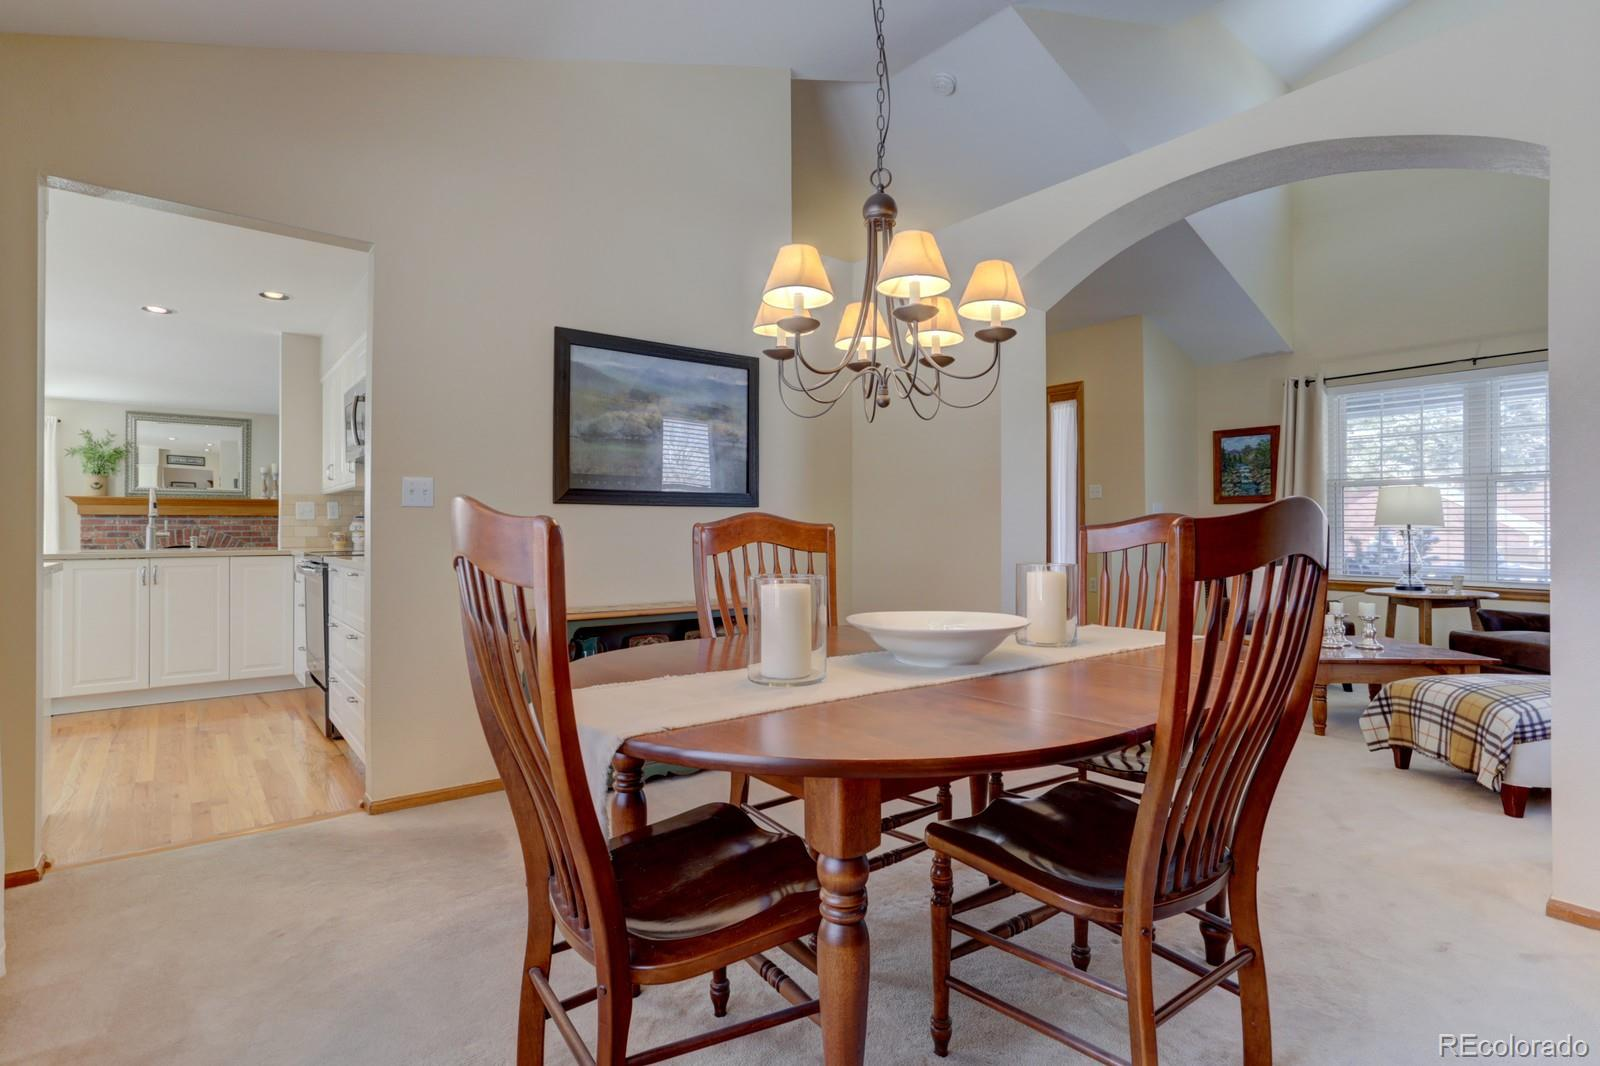 MLS# 5985159 - 9 - 9991 Spring Hill Place, Highlands Ranch, CO 80129